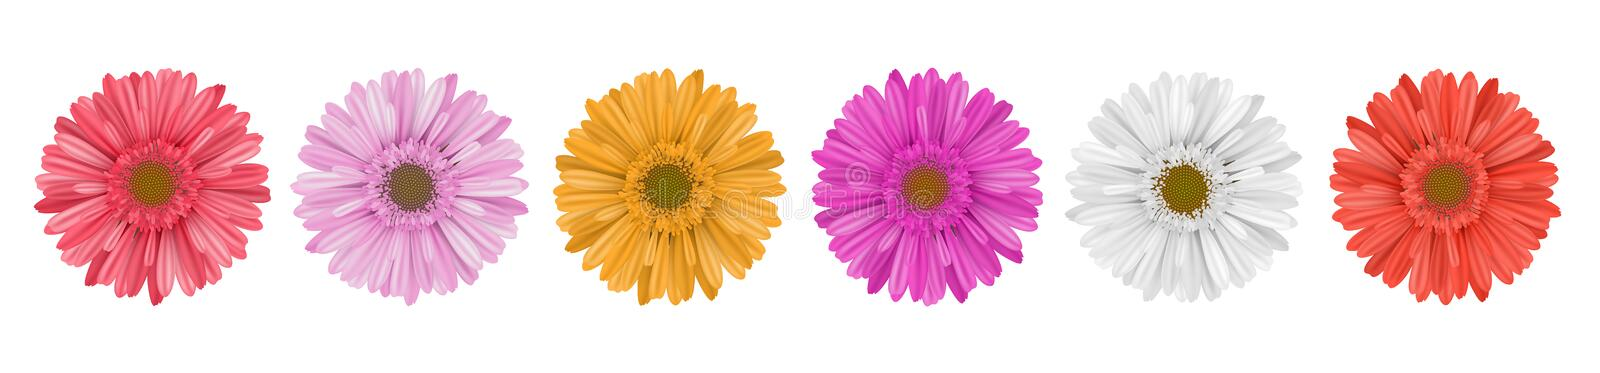 Colorful gerbera daisy flower row for banner stock illustration